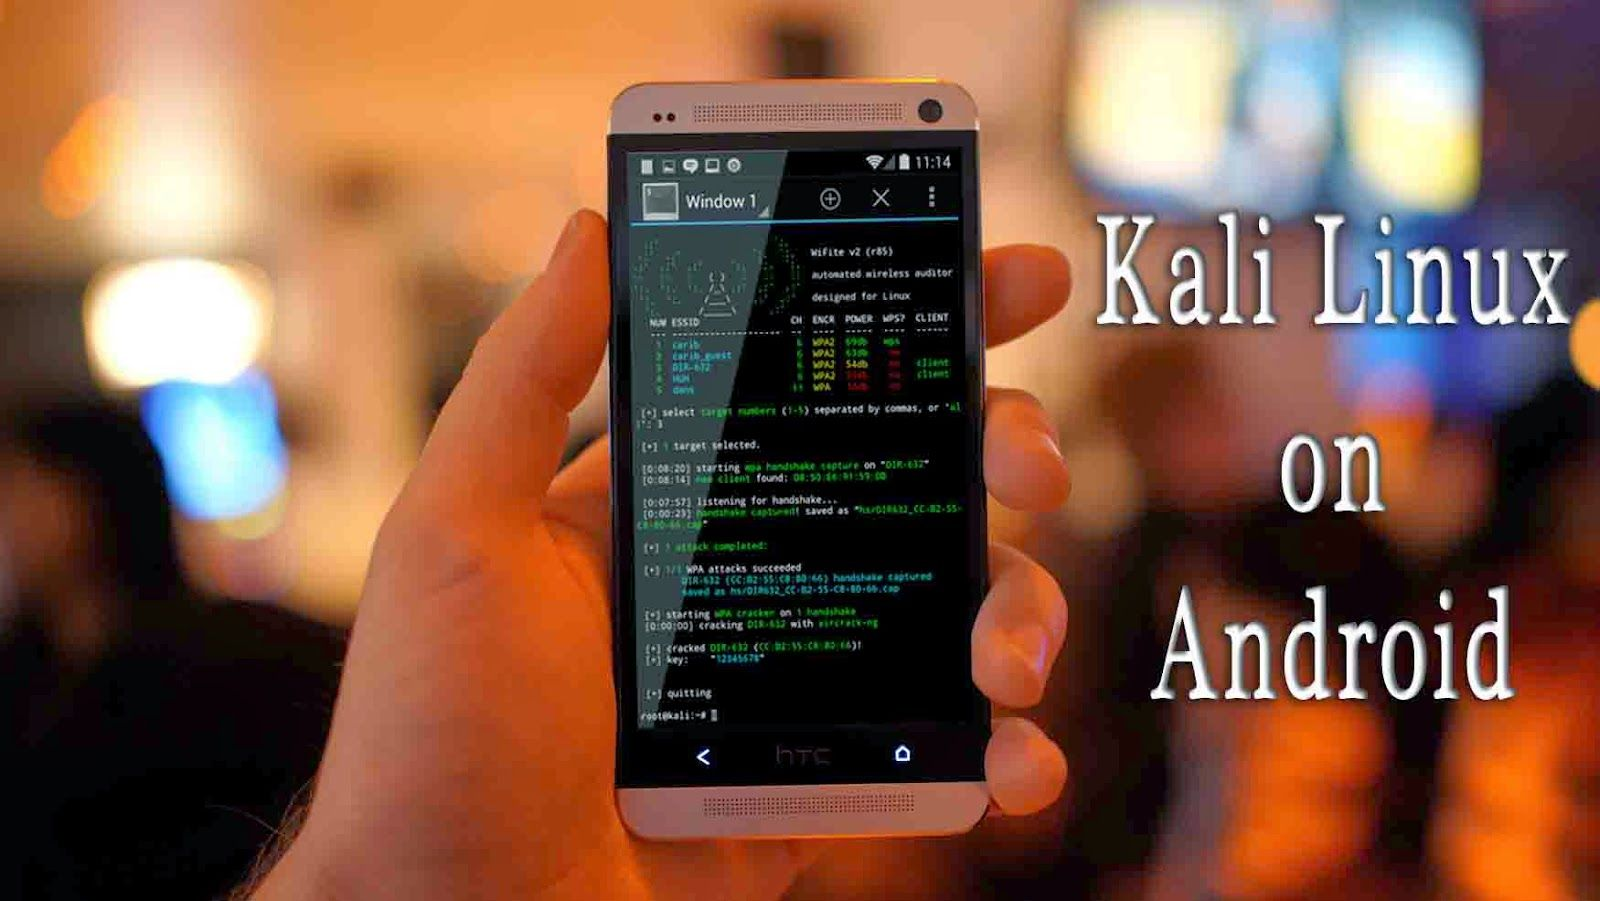 Install And Run Kali Linux On Android Smartphone In 2016